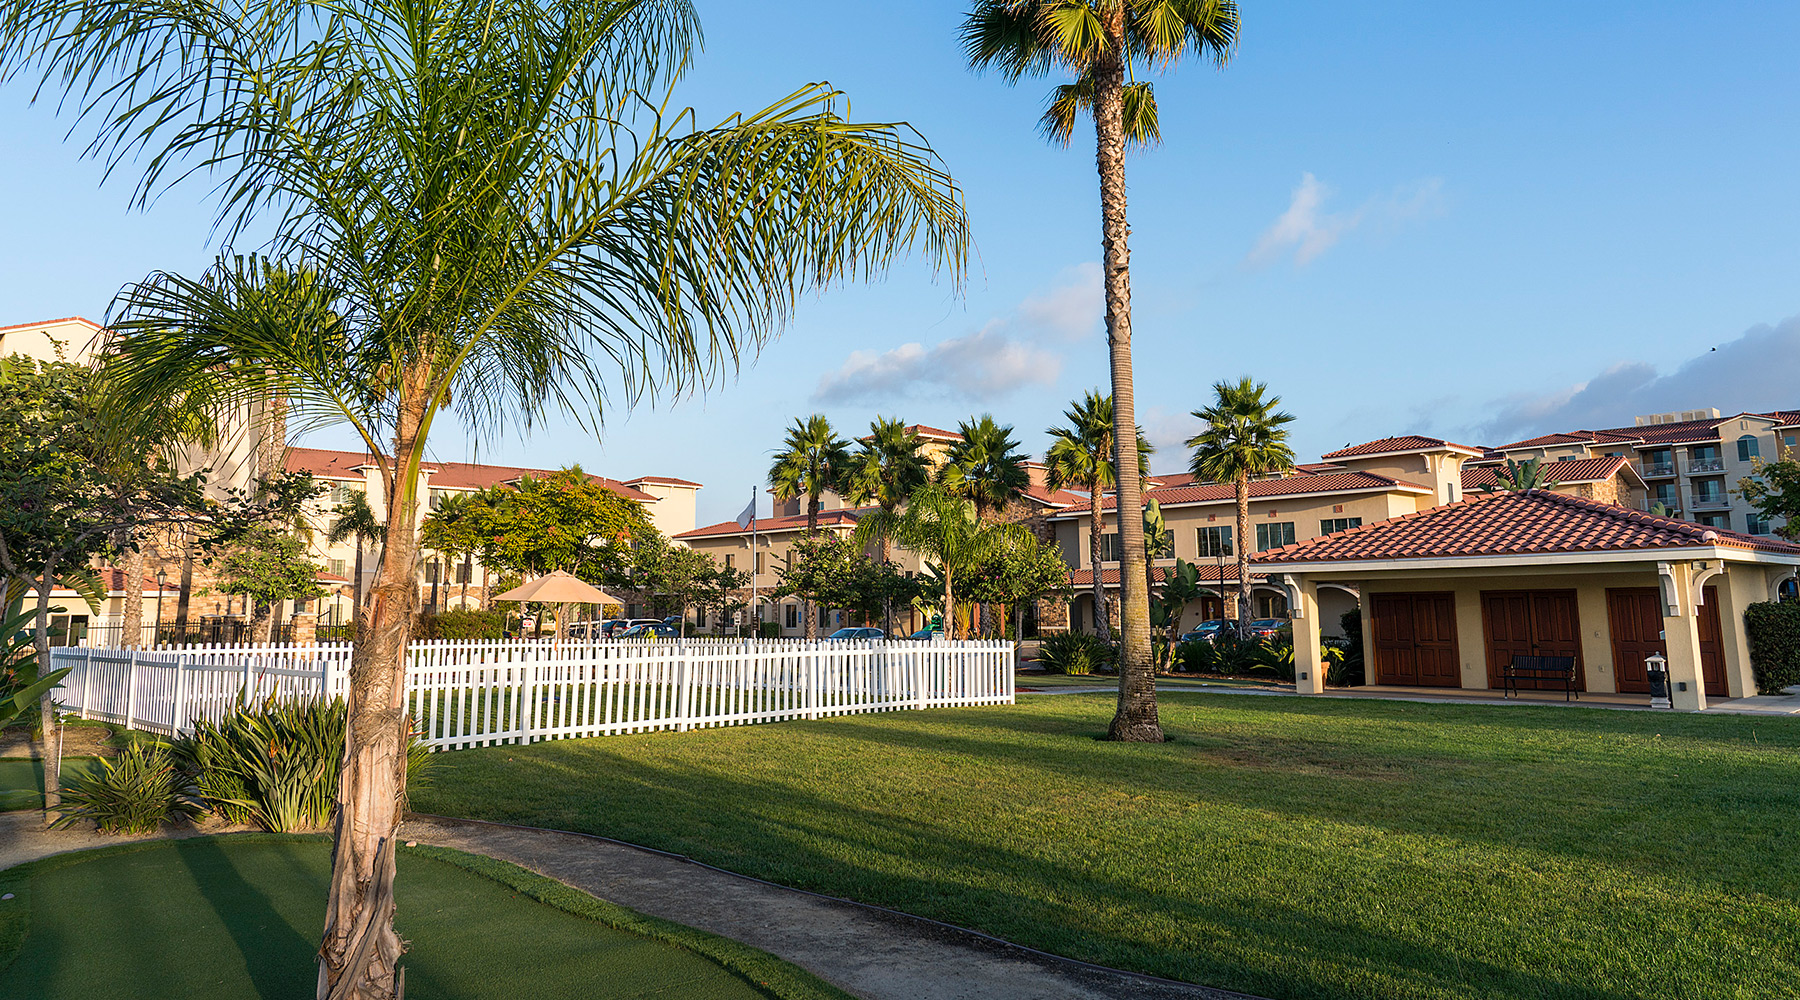 Paradise Village - Retirement Home in Southern California